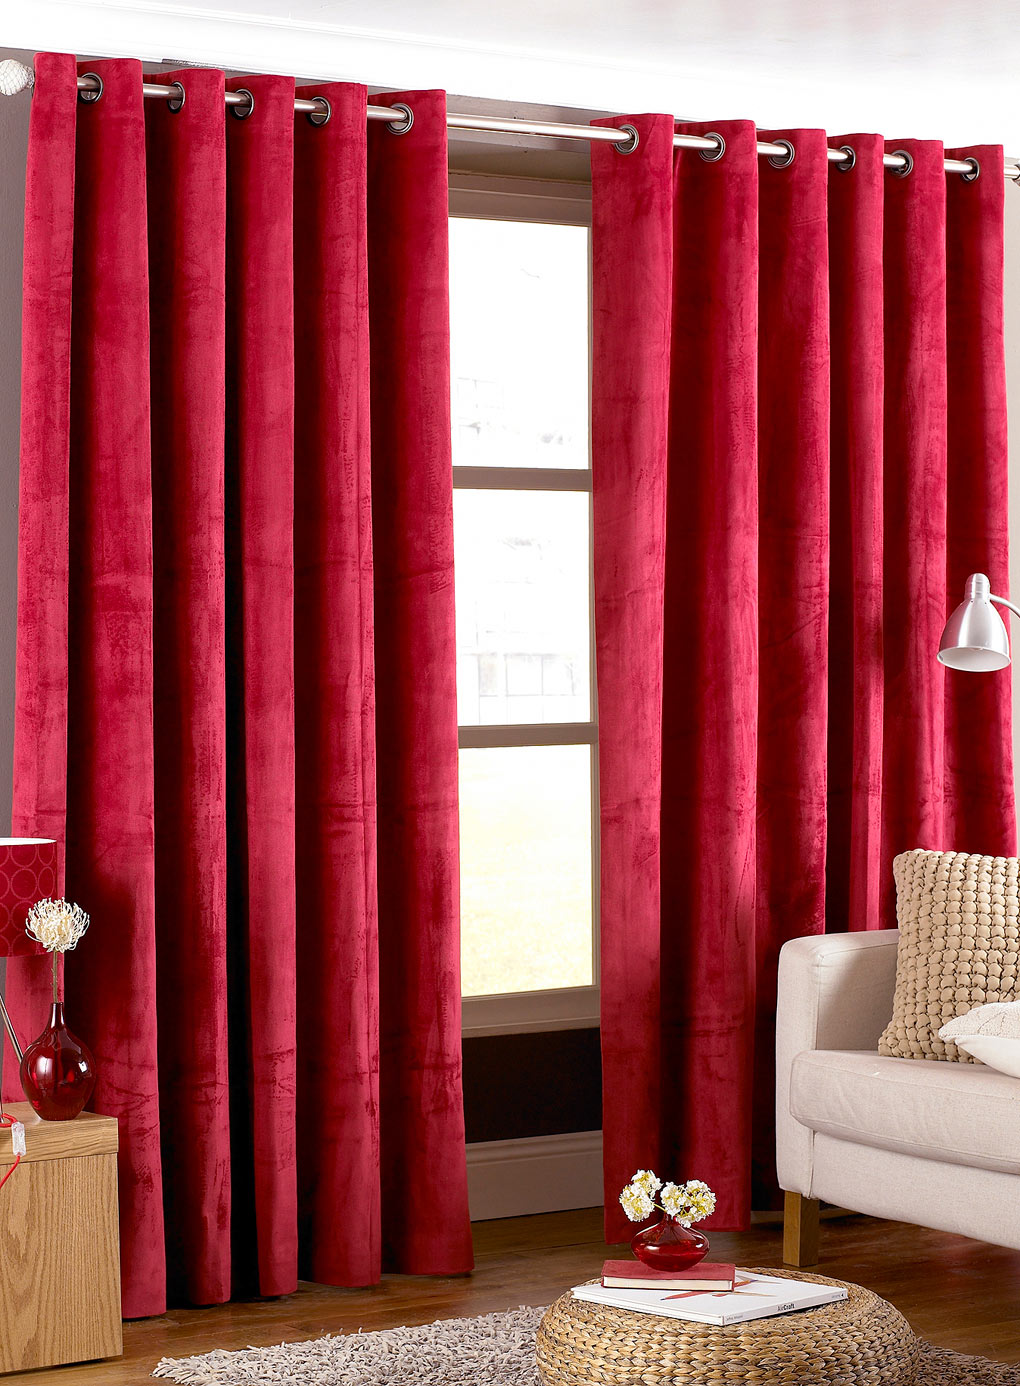 Latest-red-and-gray-striped-curtains 20+ Hottest Curtain Design Ideas for 2020